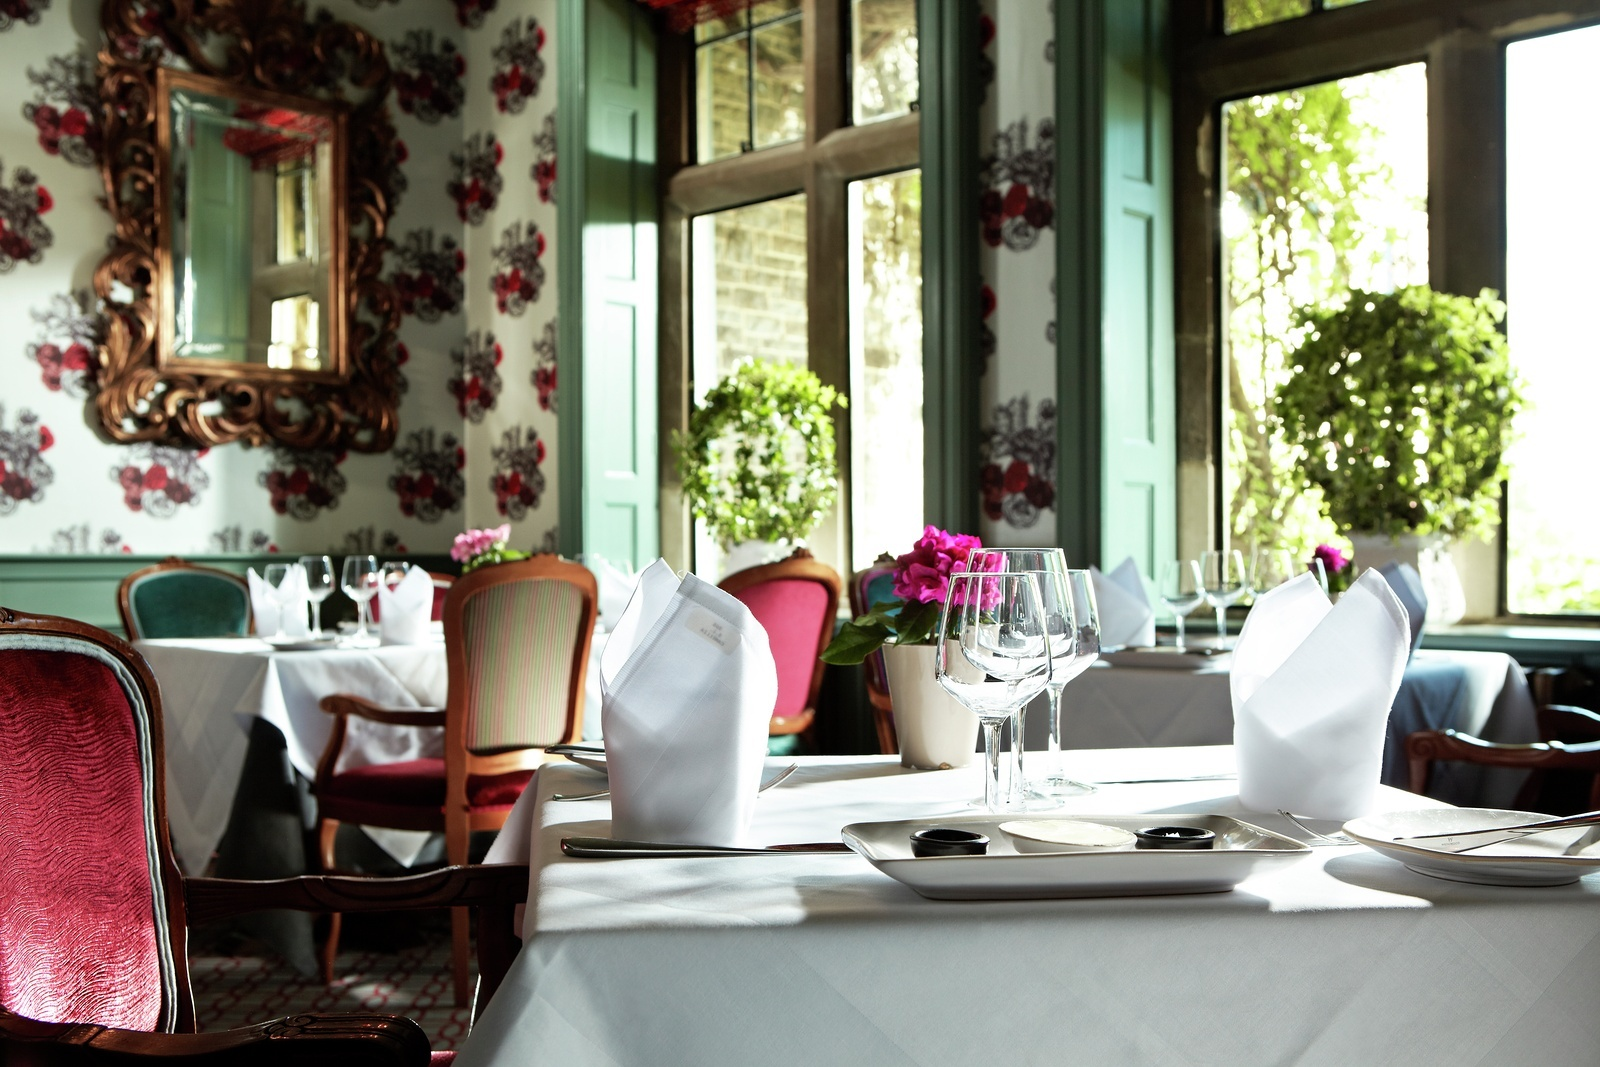 The Camellia Restaurant - West Sussex